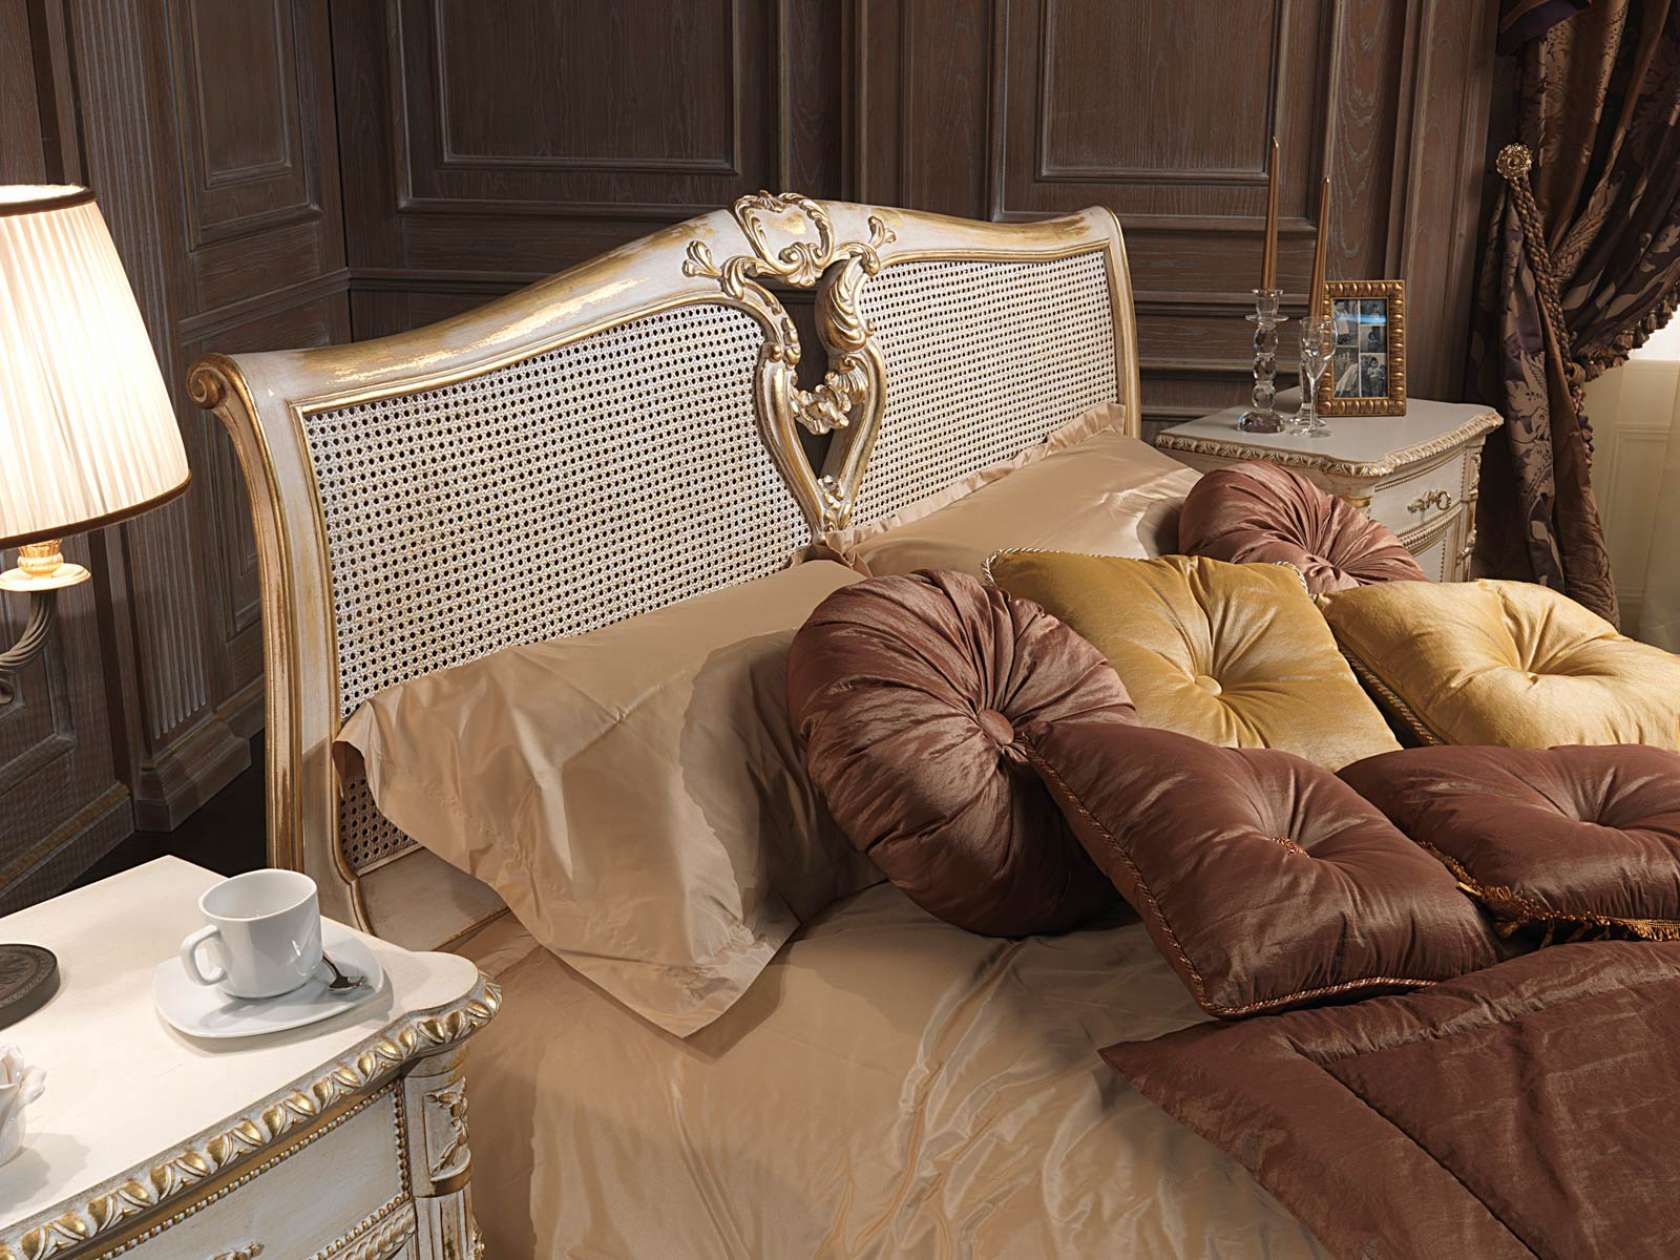 Classic Louis XVI bedroom, bed with